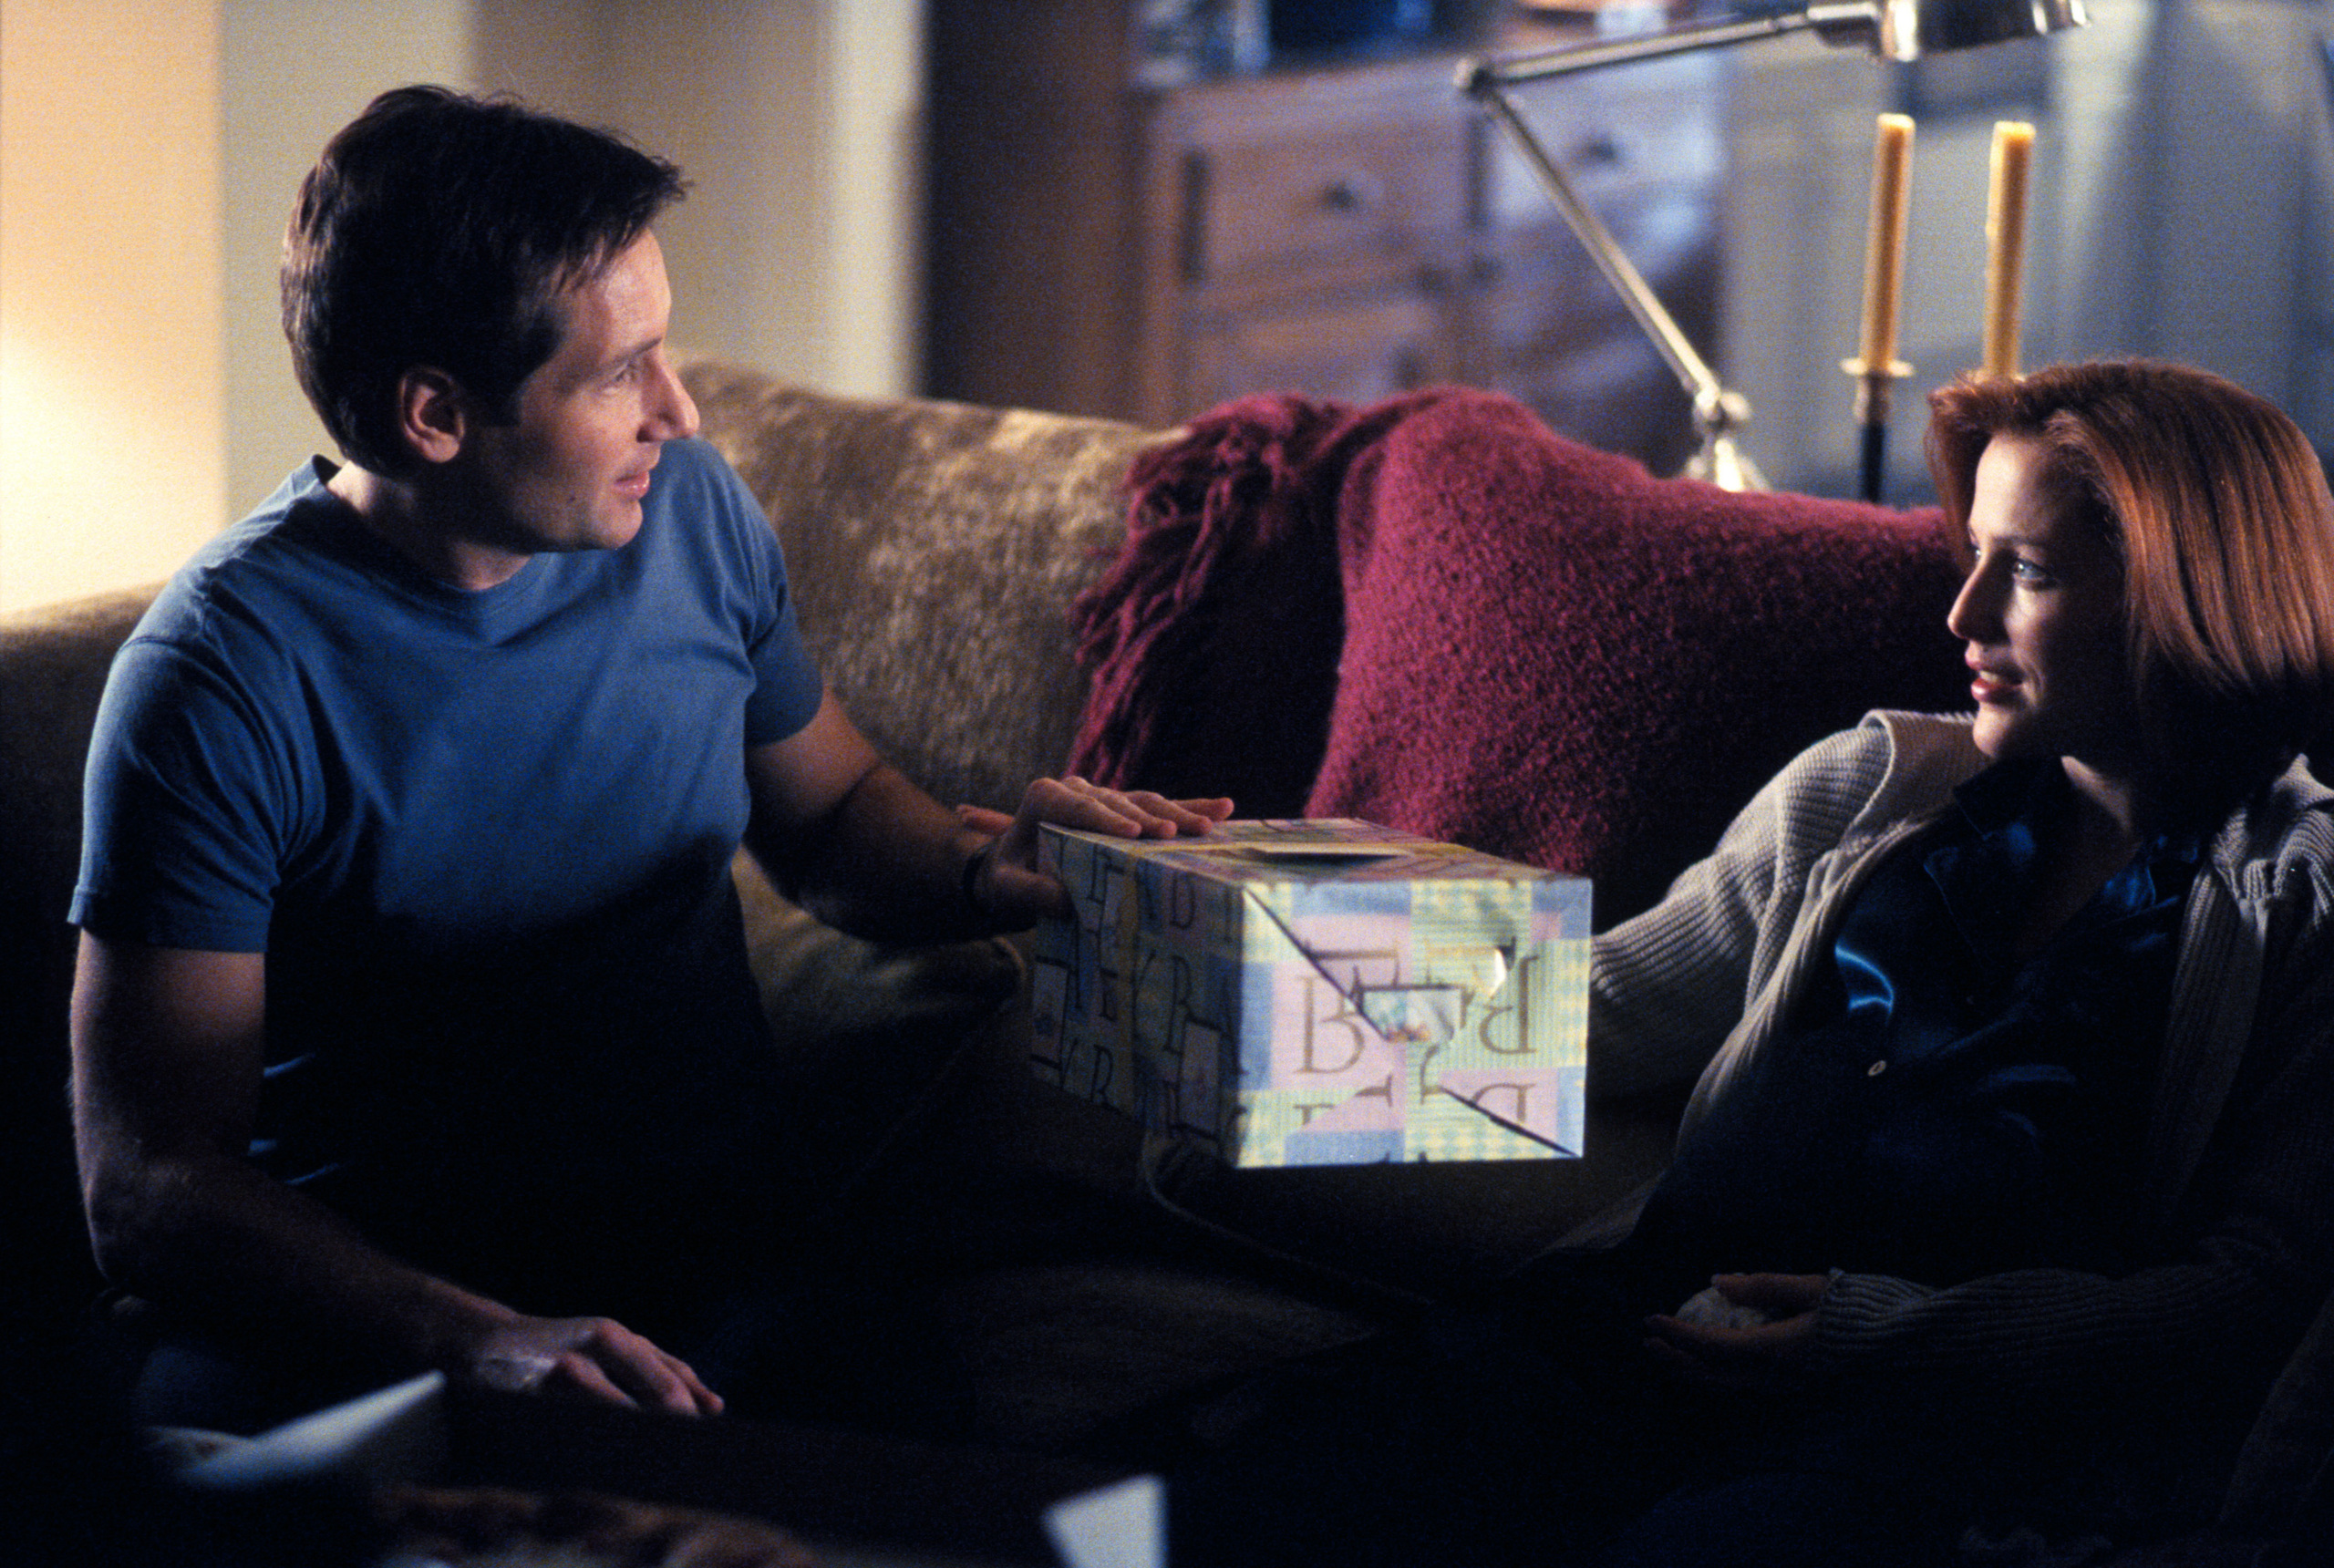 image Xfiles nights mulder and scully erotica